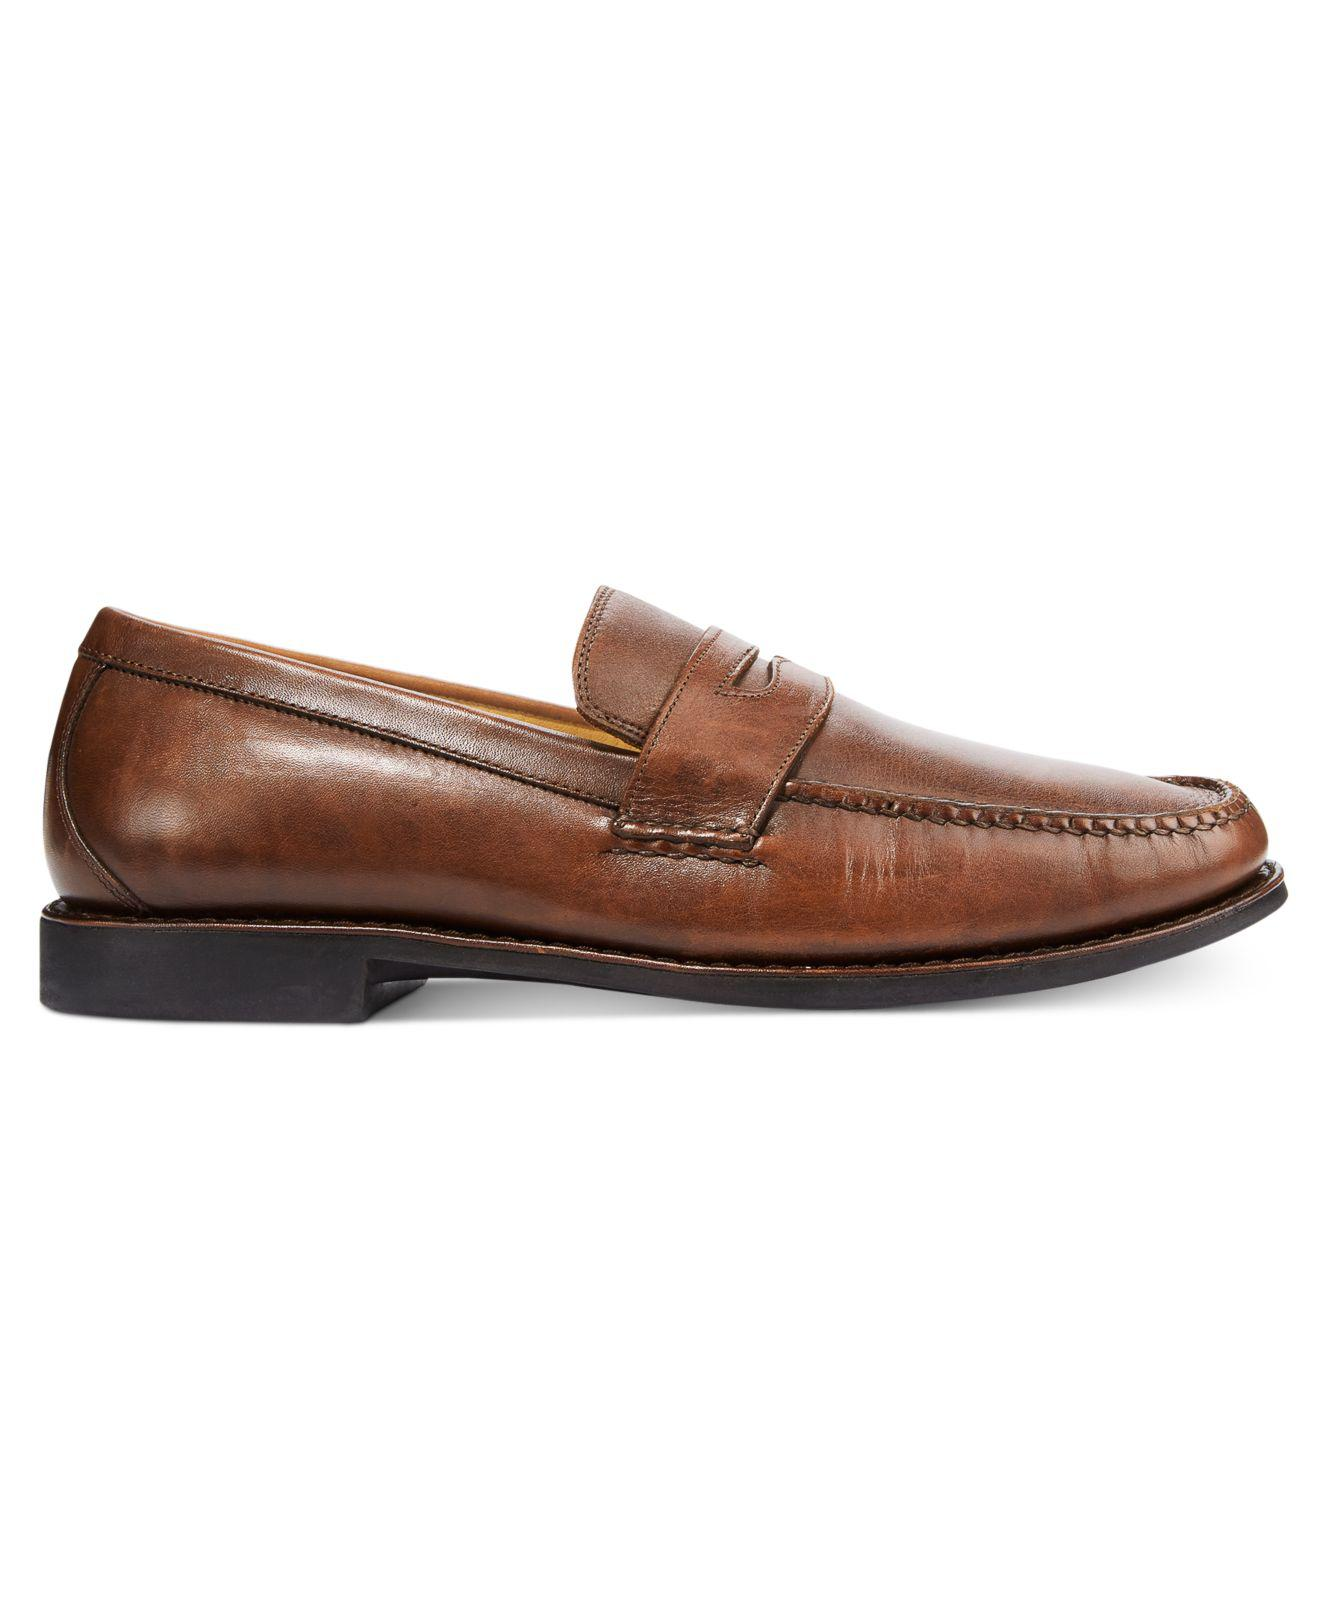 61e57a06131 Lyst - Johnston   Murphy Comfort Ainsworth Penny Loafer in Black for Men